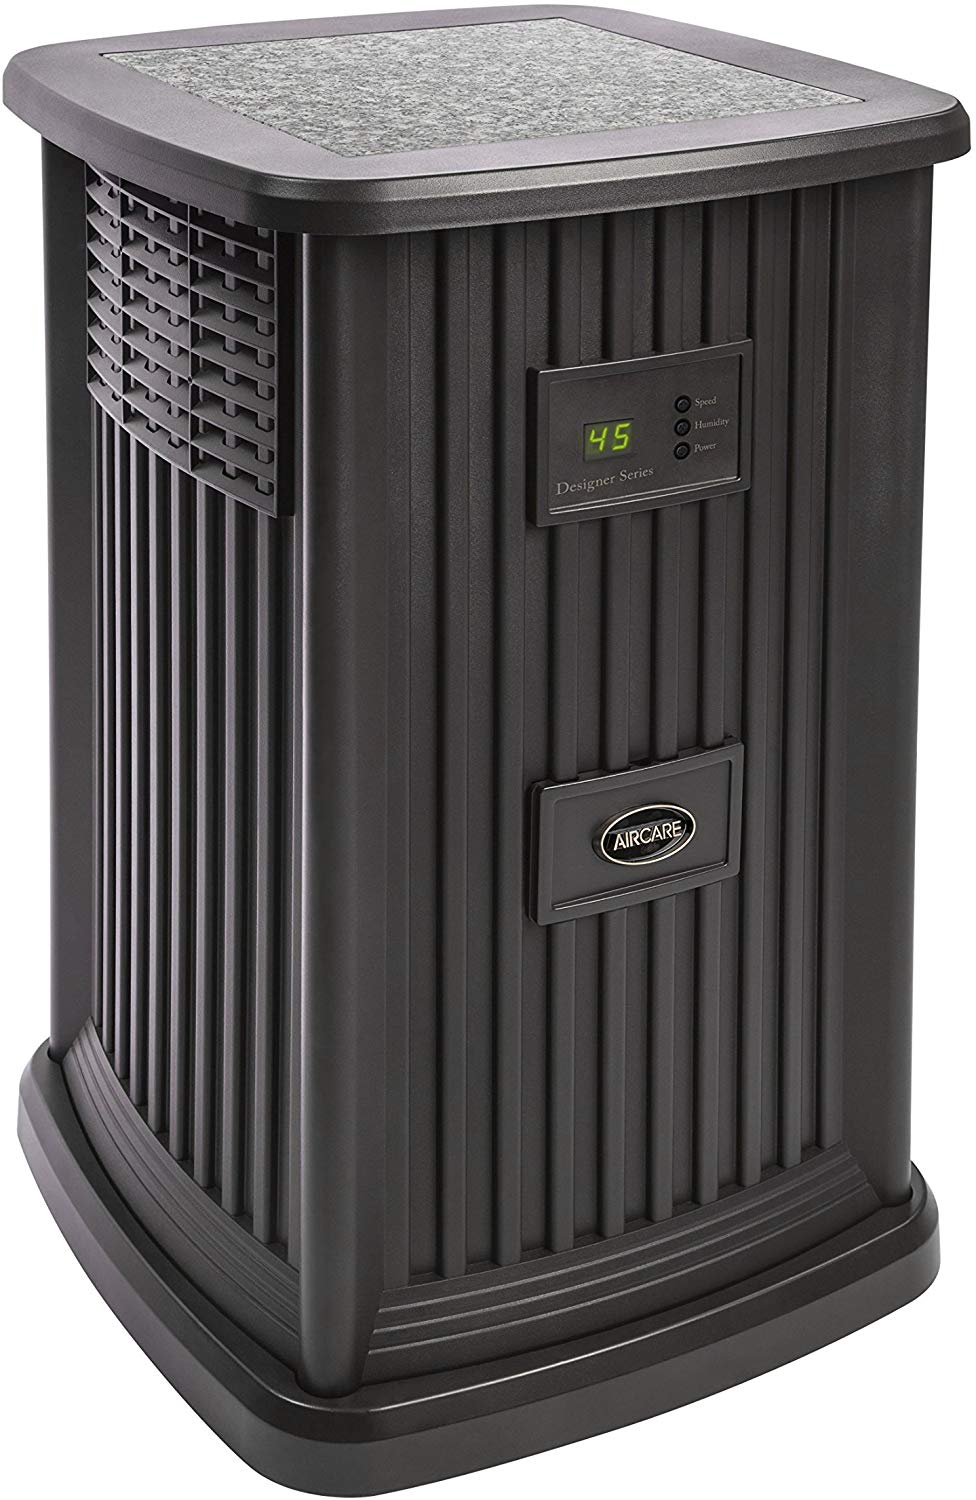 AIRCARE EP9 800 Digital Humidifier​